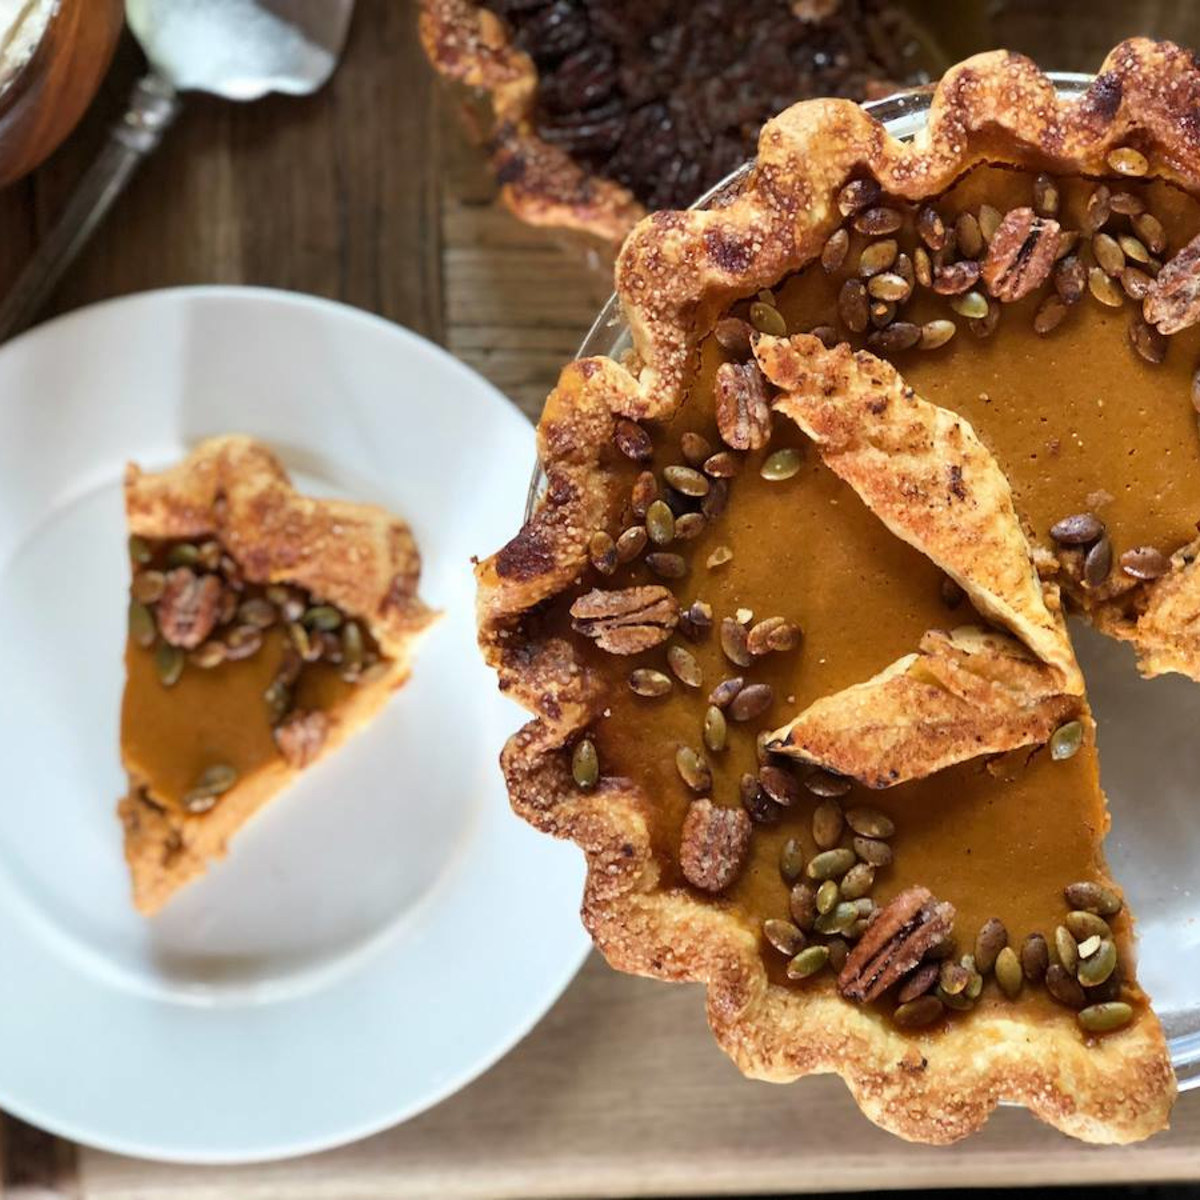 The Dunlavy Thanksgiving pie